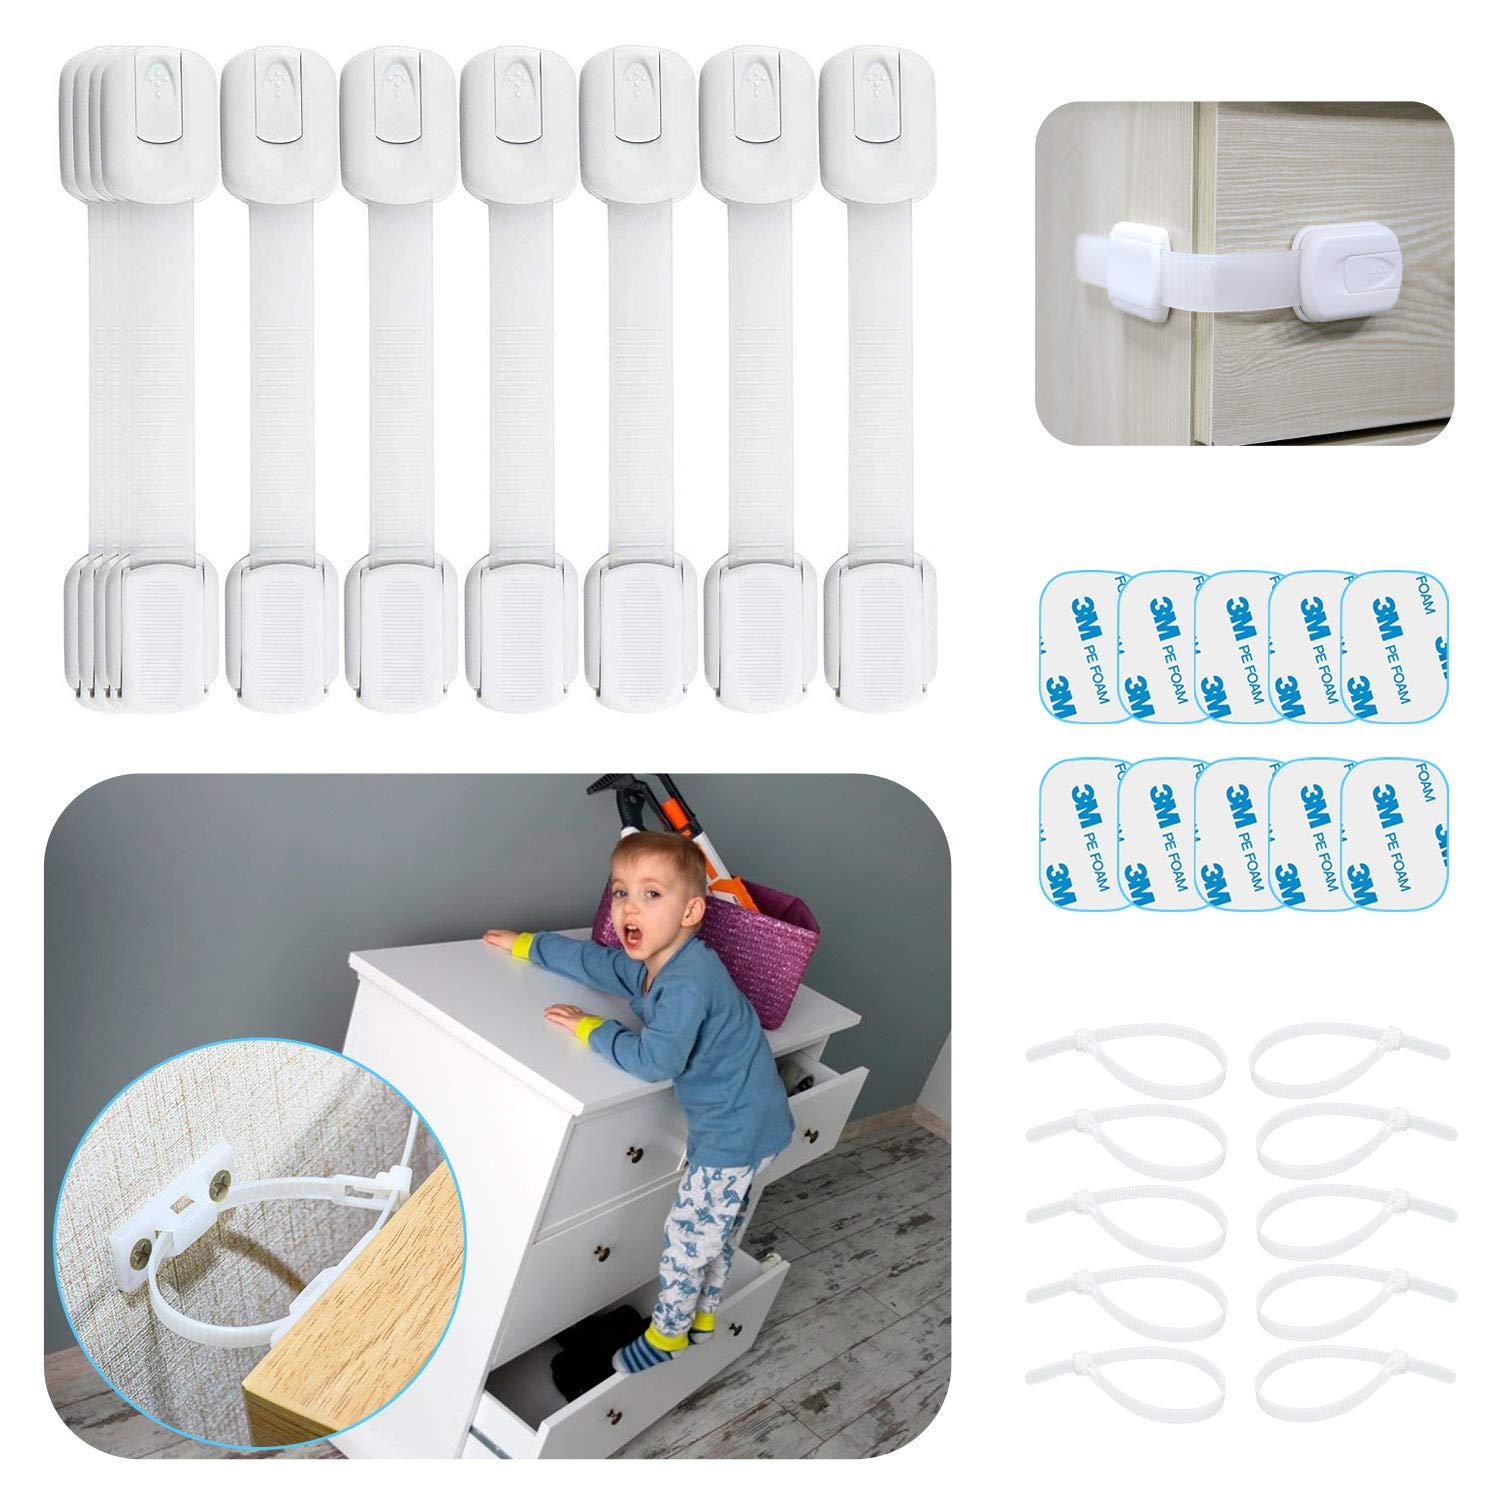 Cabinet Locks for Babies - 30 Pcs Baby Proofing Kit, 10 Child Safety Cabinet Locks with 10 Extra 3M Adhesives, Multi-Purpose for Kitchen, Toilet, 10 Furniture Straps & Anchors for Dresser, Bookshelf